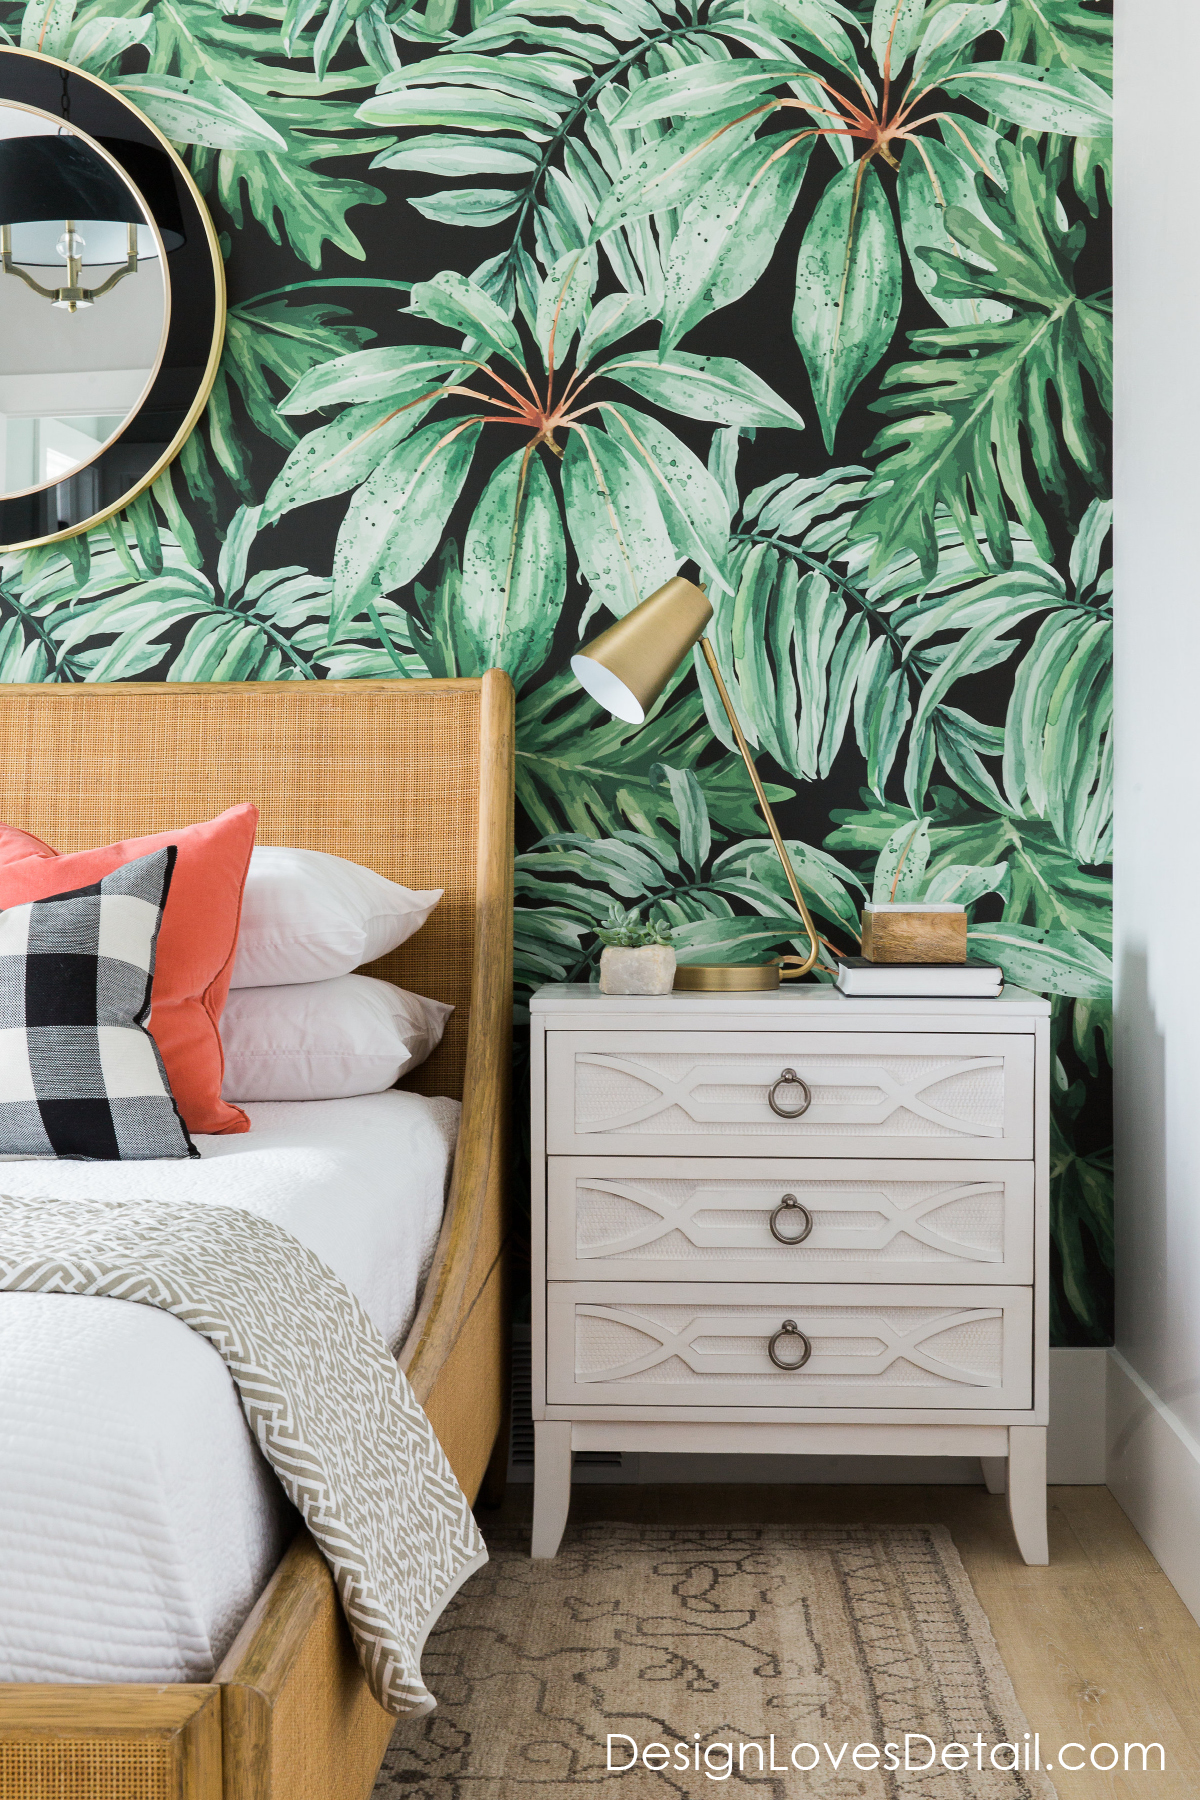 Banana leaf, tropical wallpaper. Love this design by Mollie Openshaw of DesignLovesDetail.com!